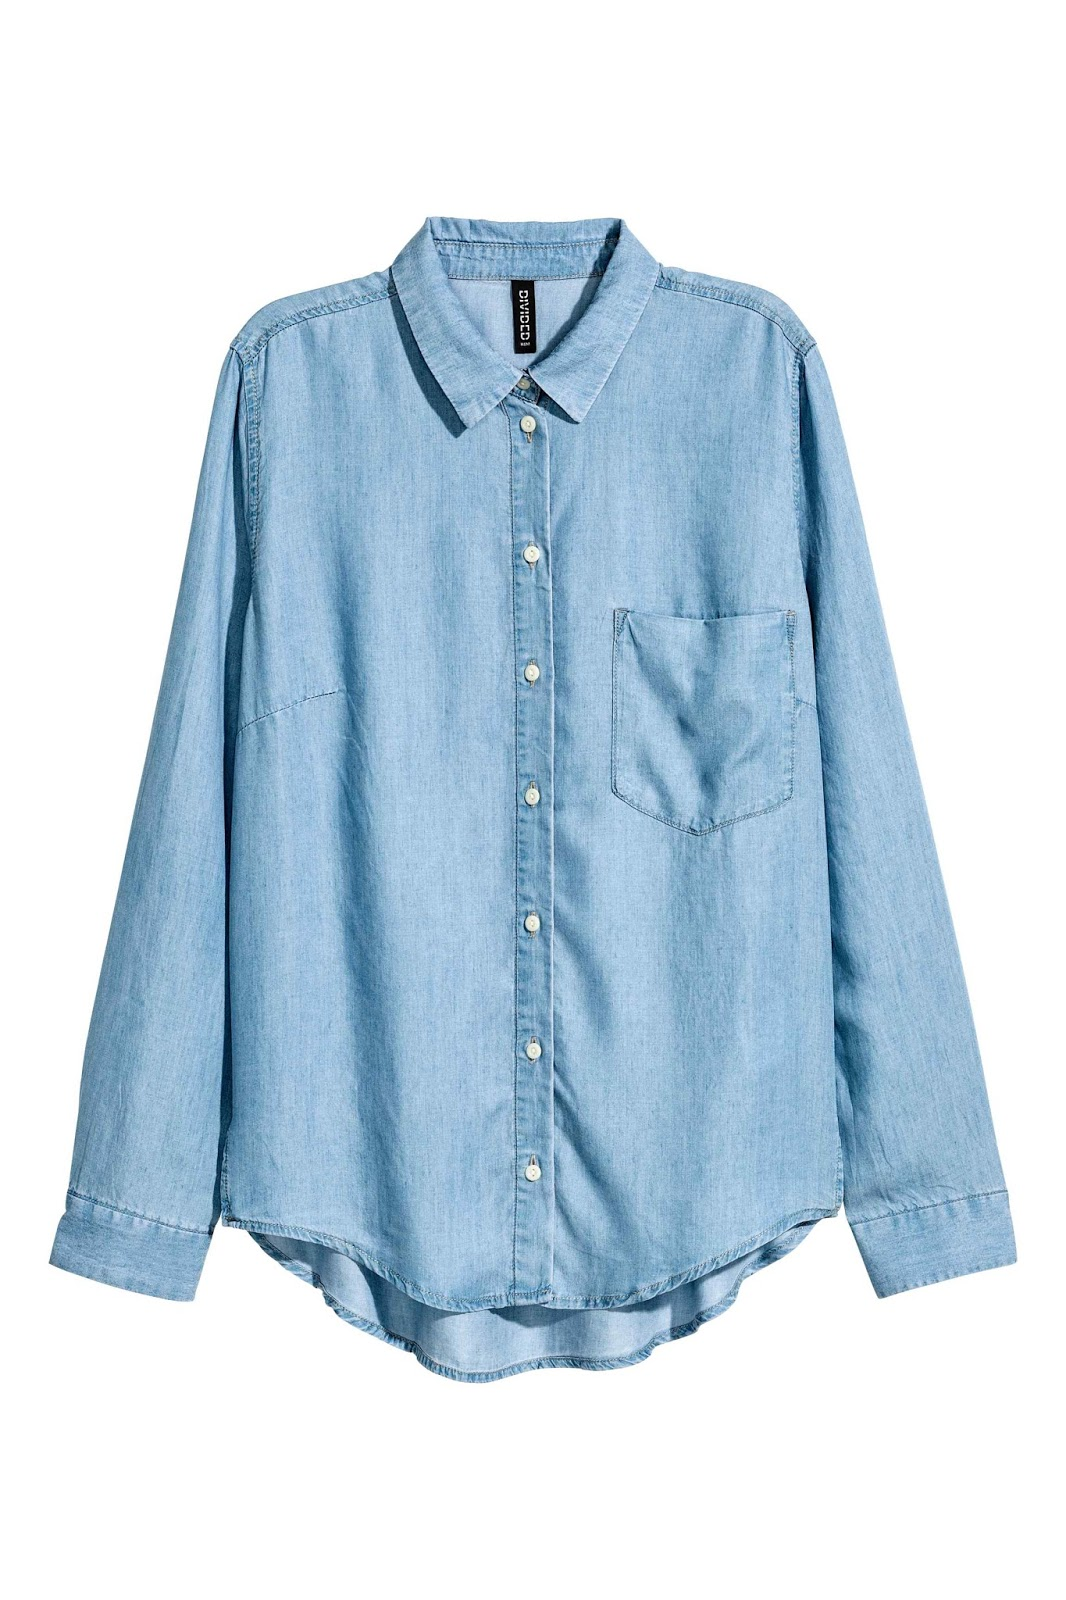 denim shirt HM